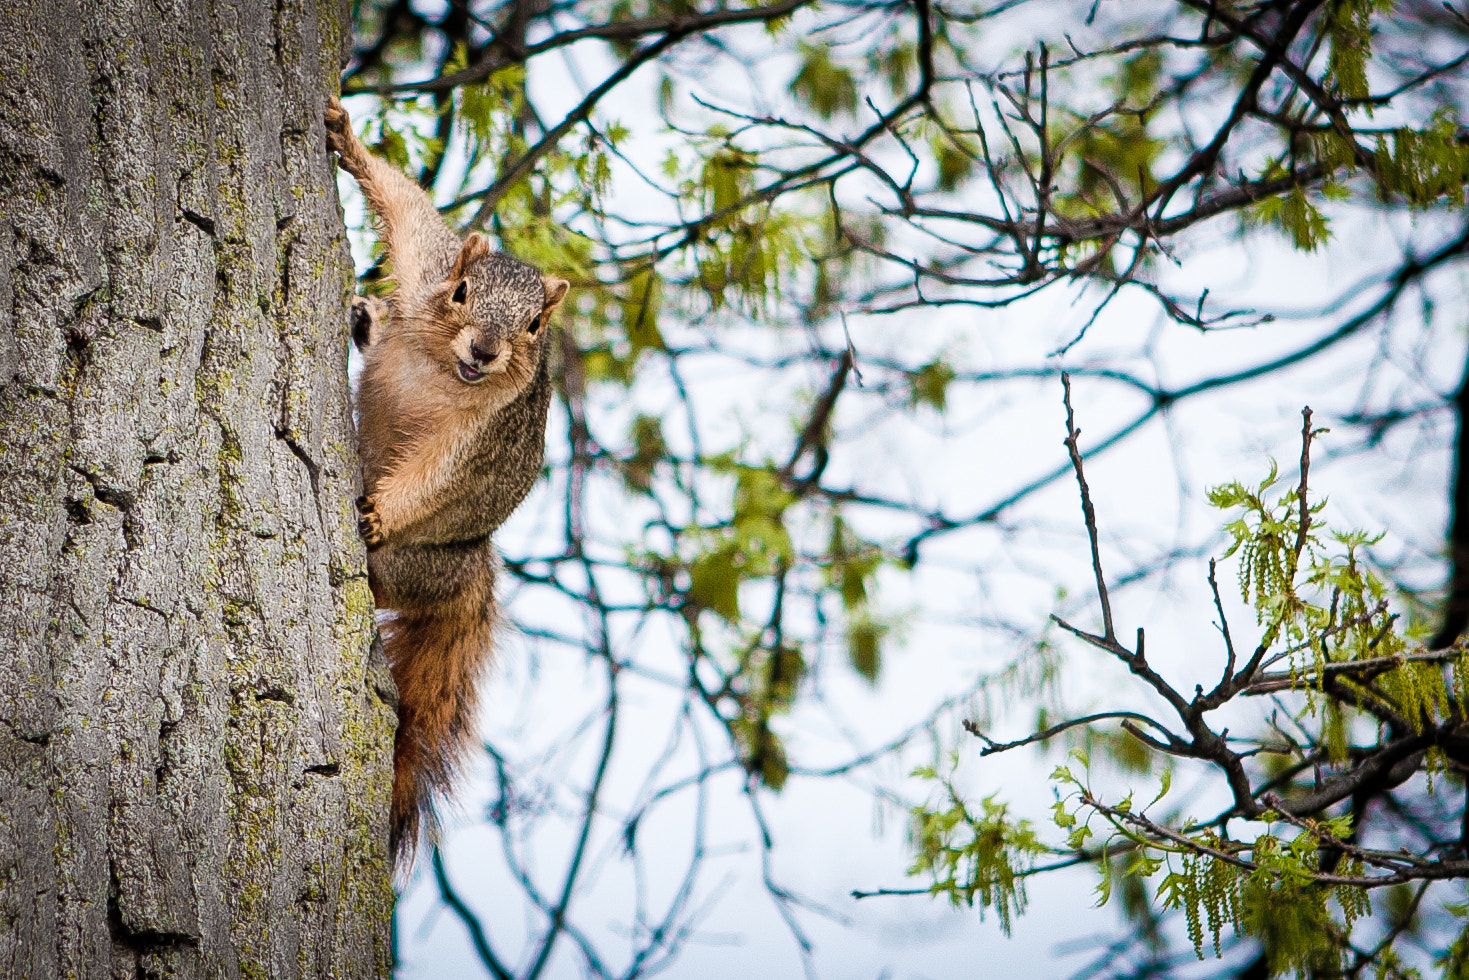 Photograph Squirrelin' Around by Mark Coffman on 500px